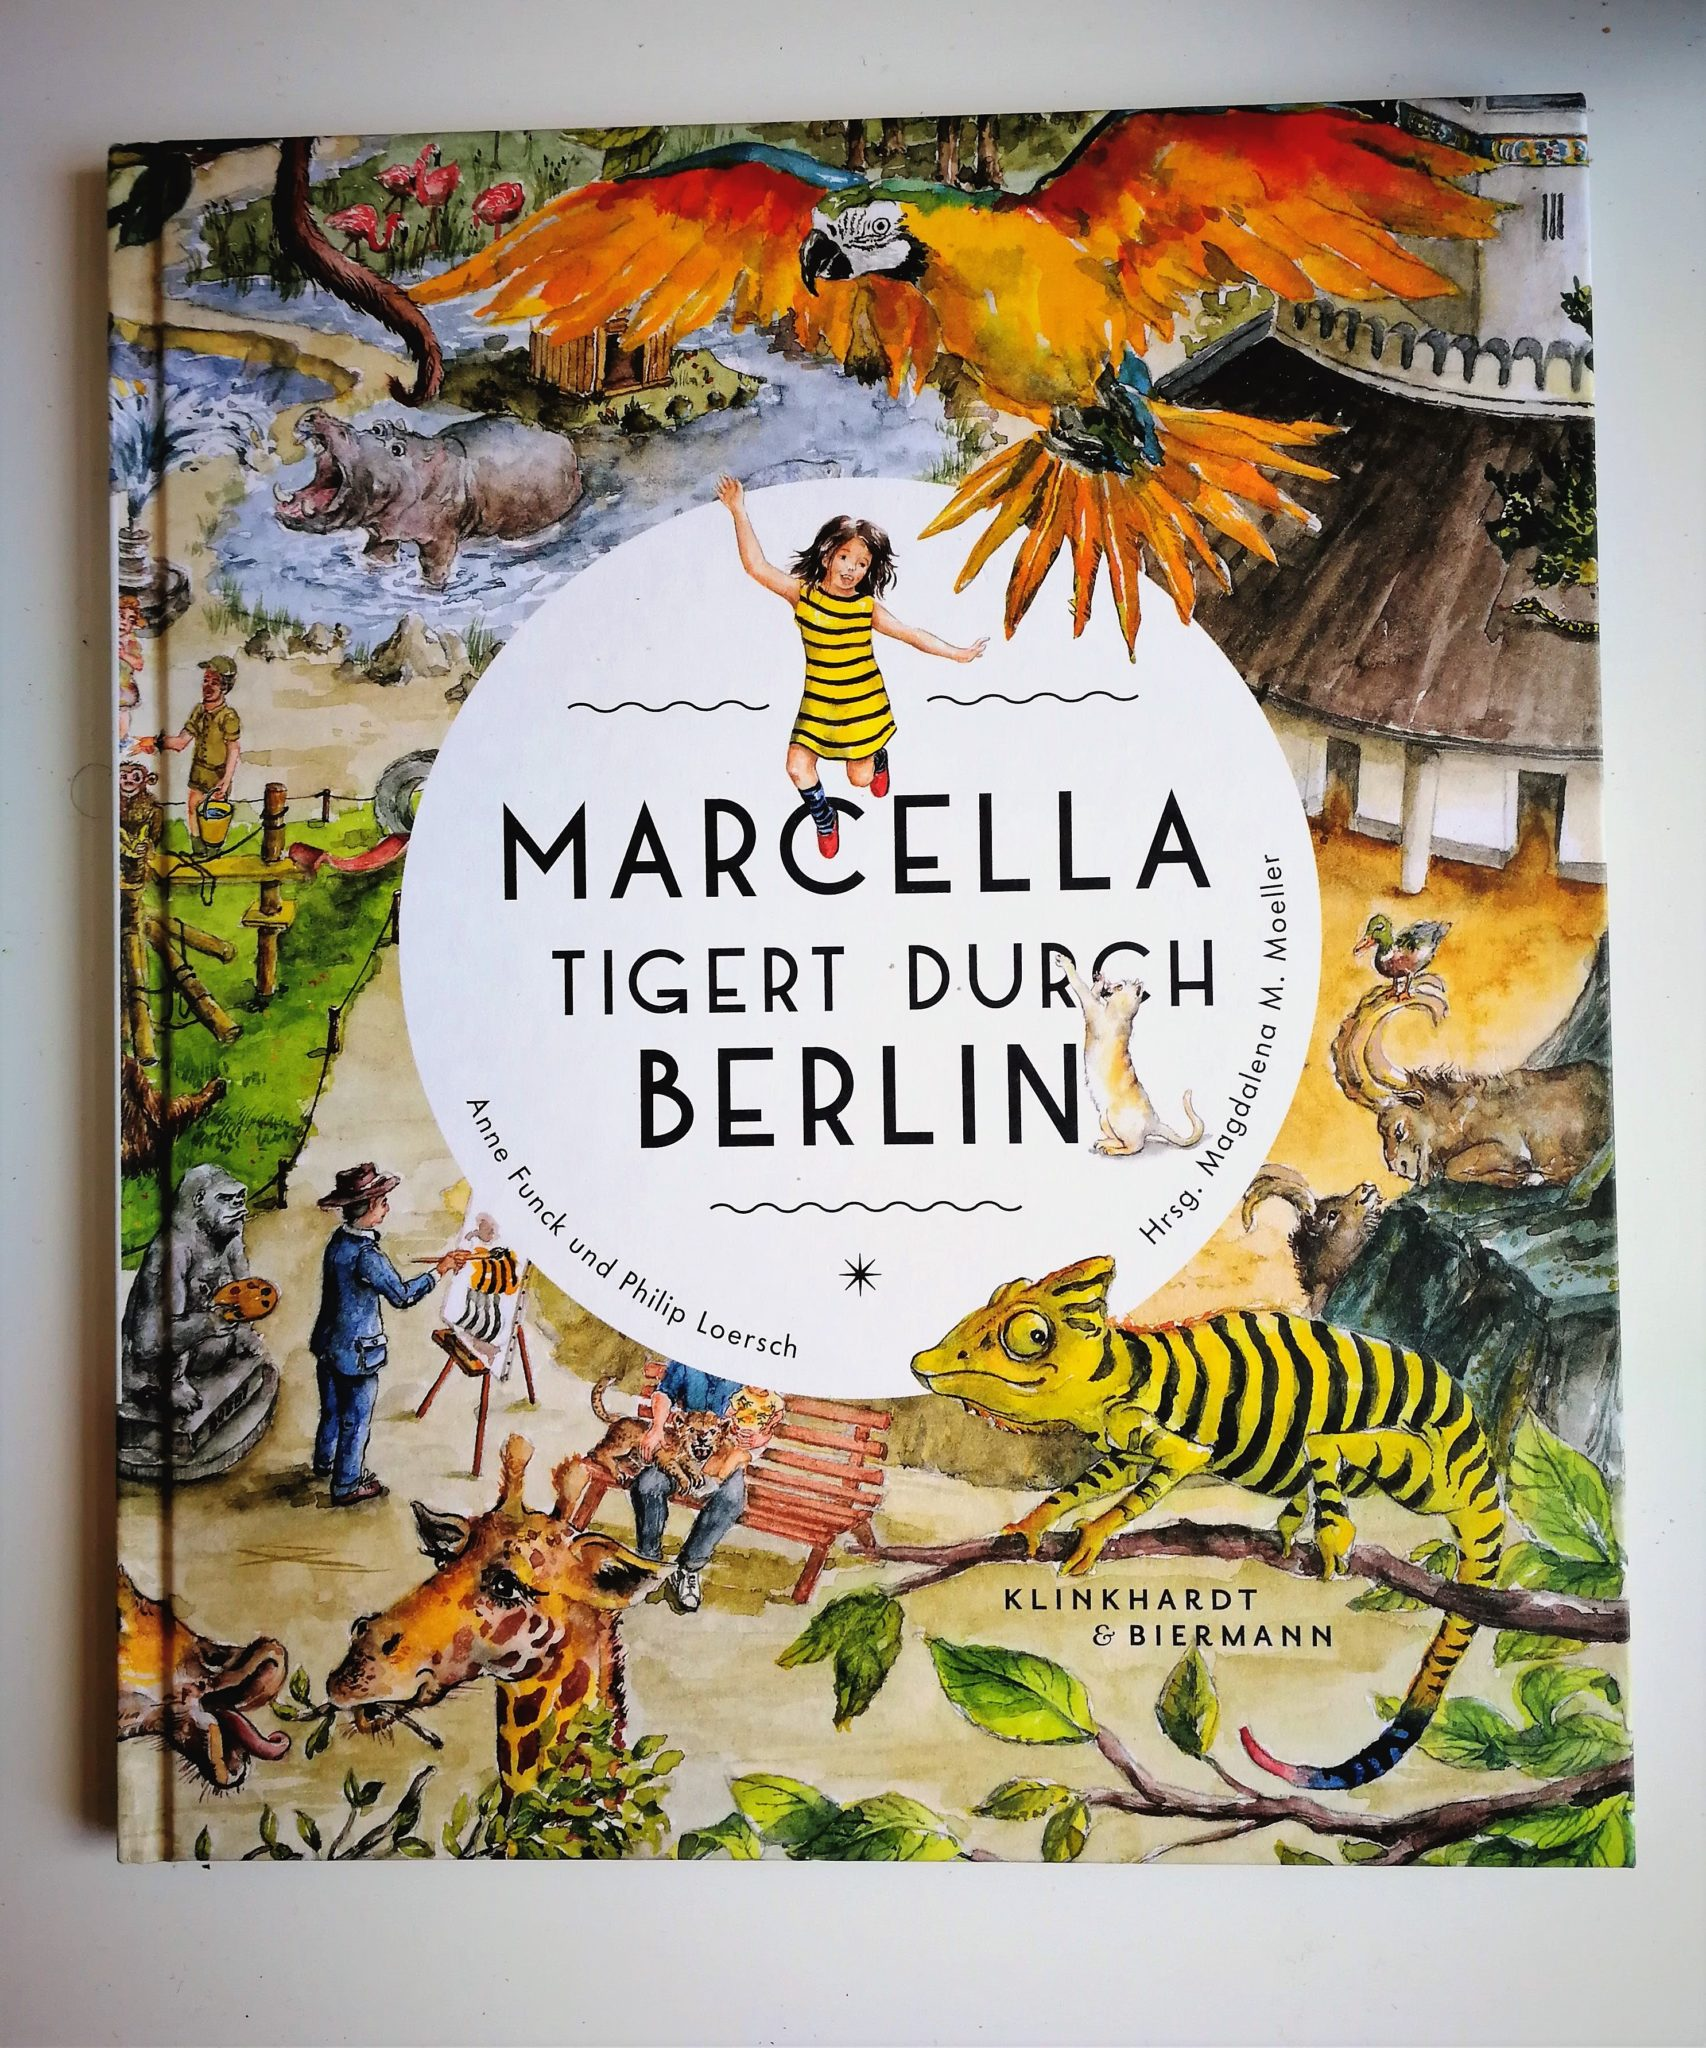 Marcella tigert durch Berlin